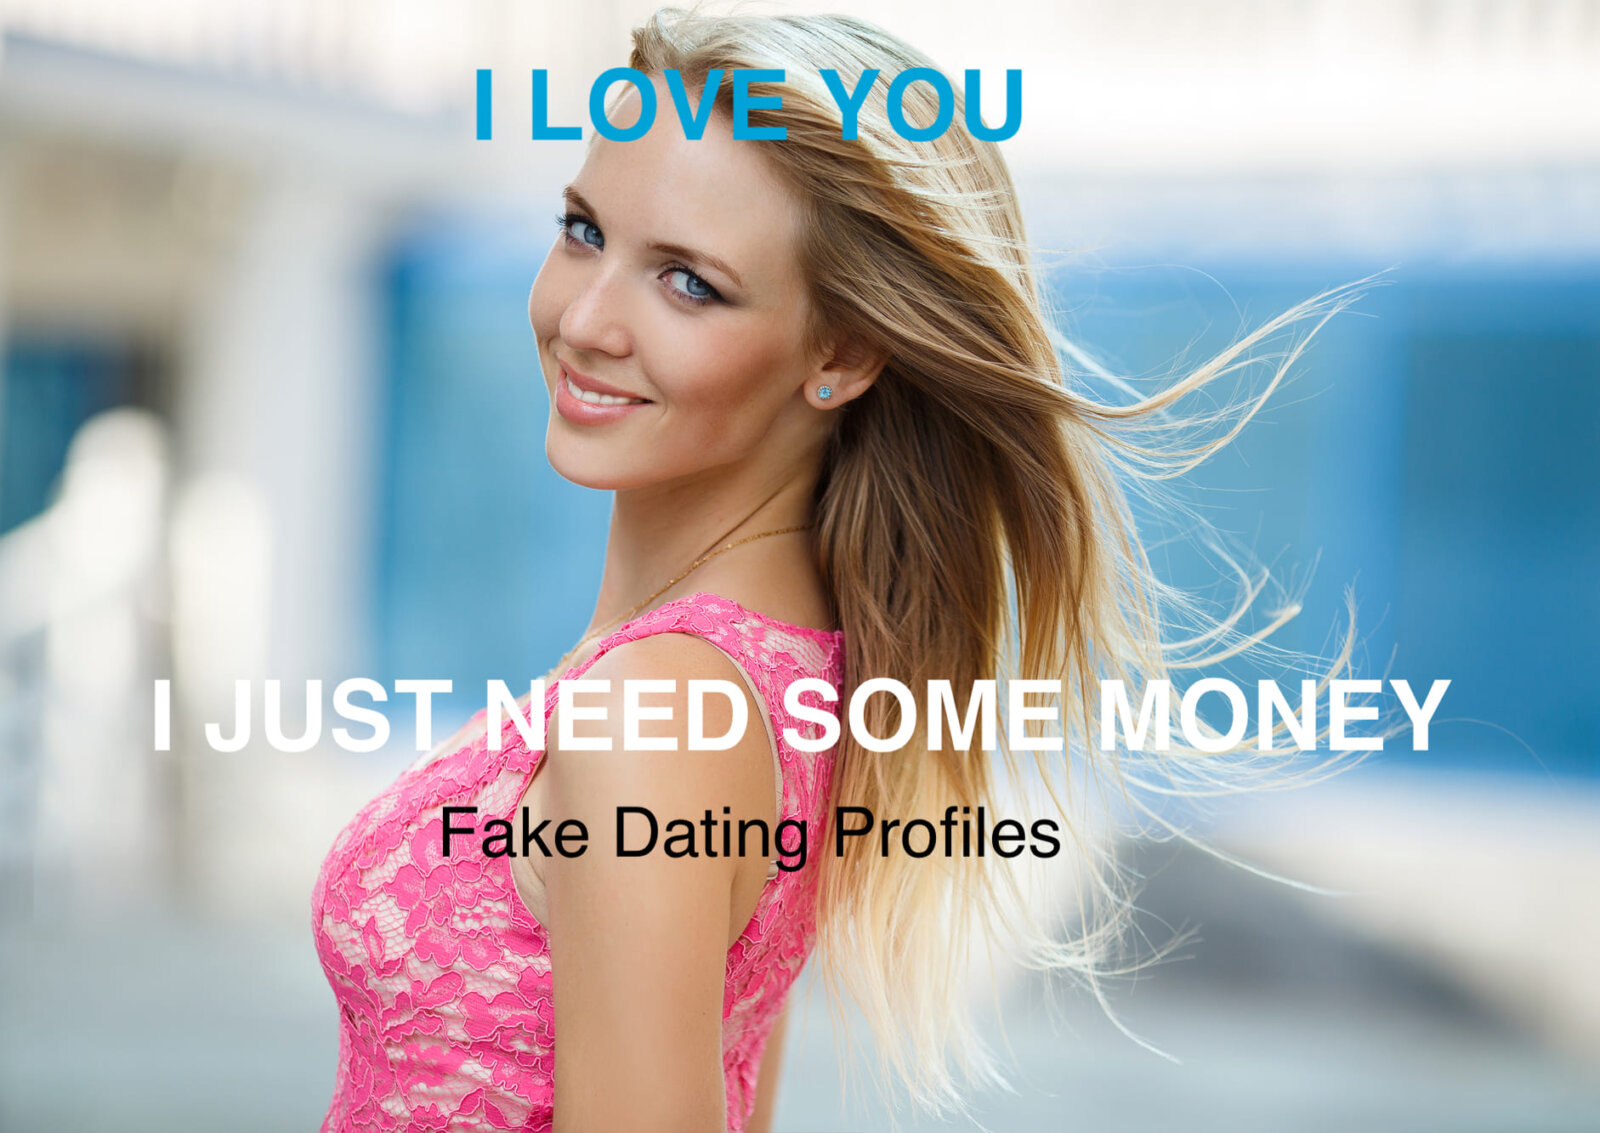 How to detect a fake dating profile?